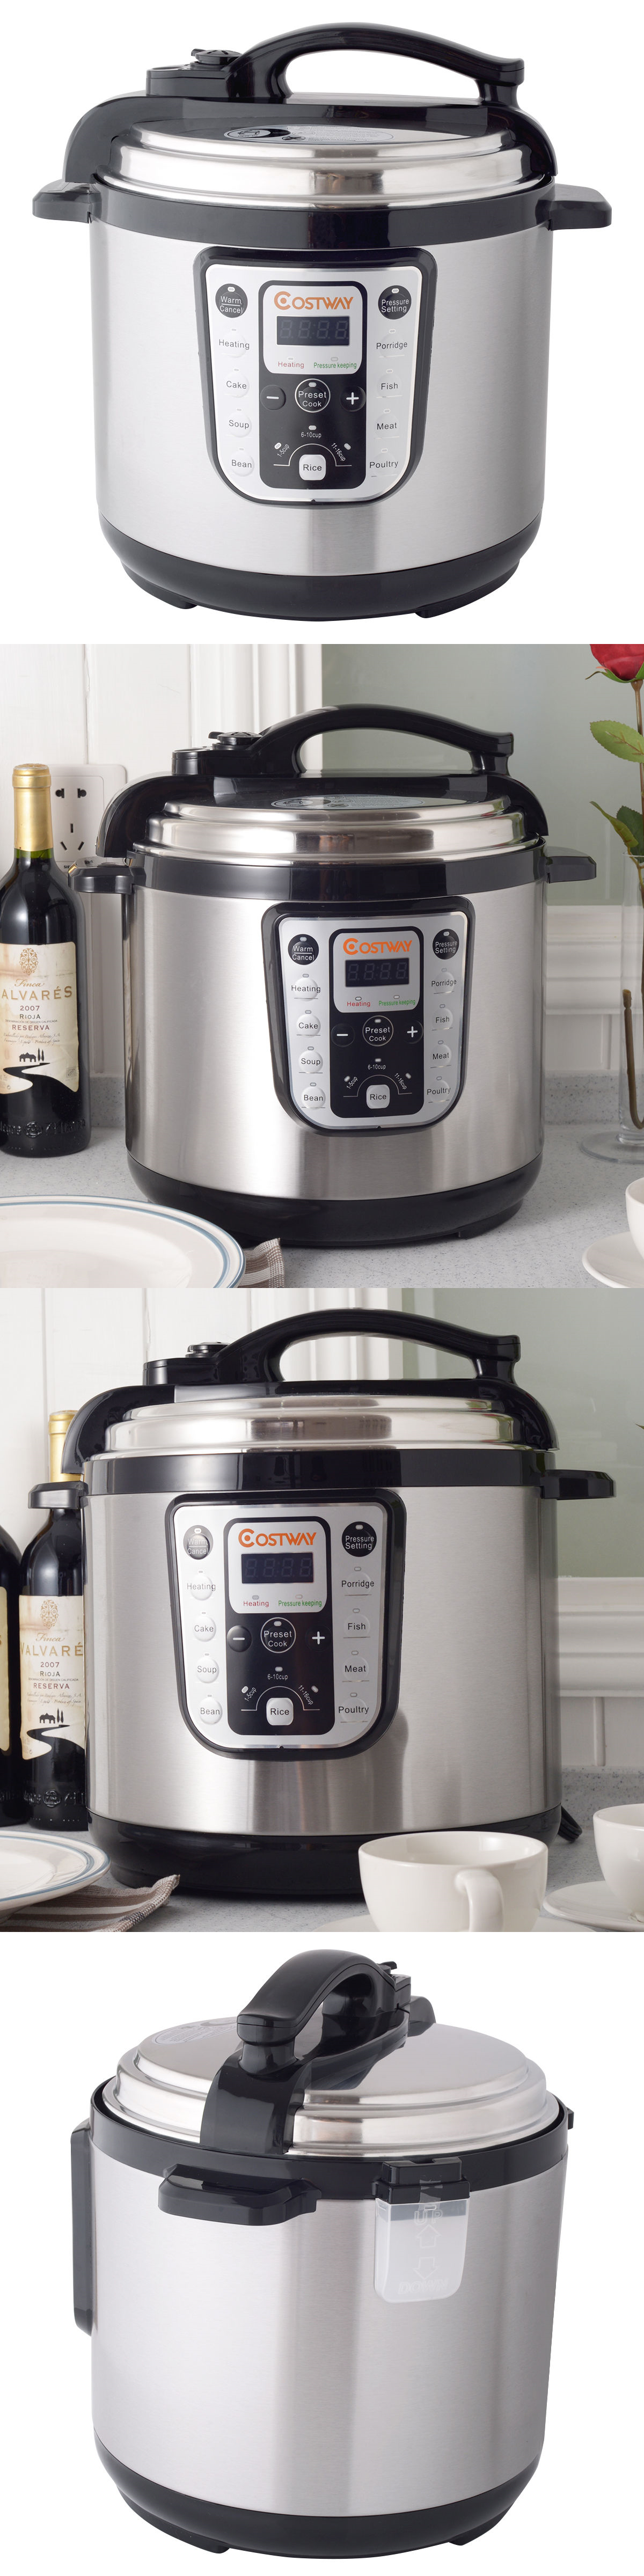 Cookers and steamers w quart electric pressure cooker